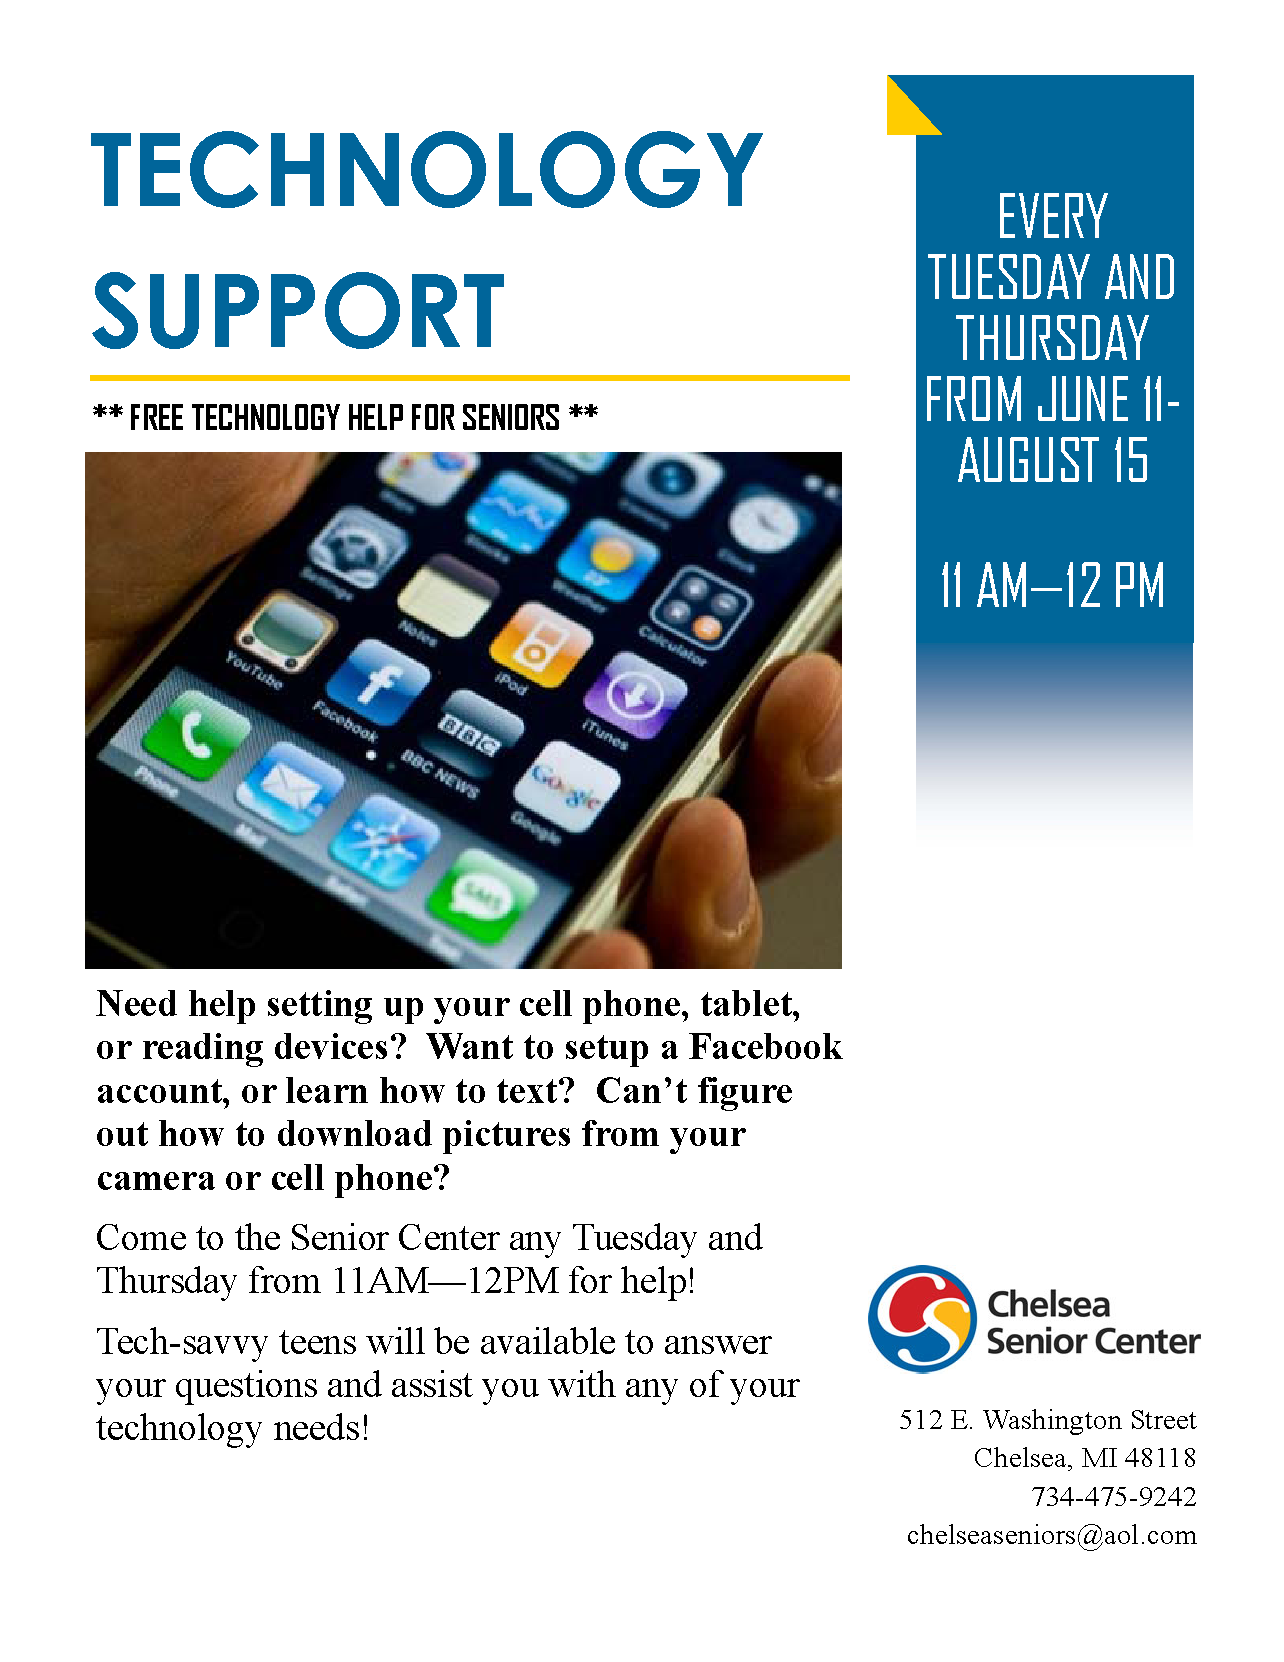 Technology Support for Seniors!